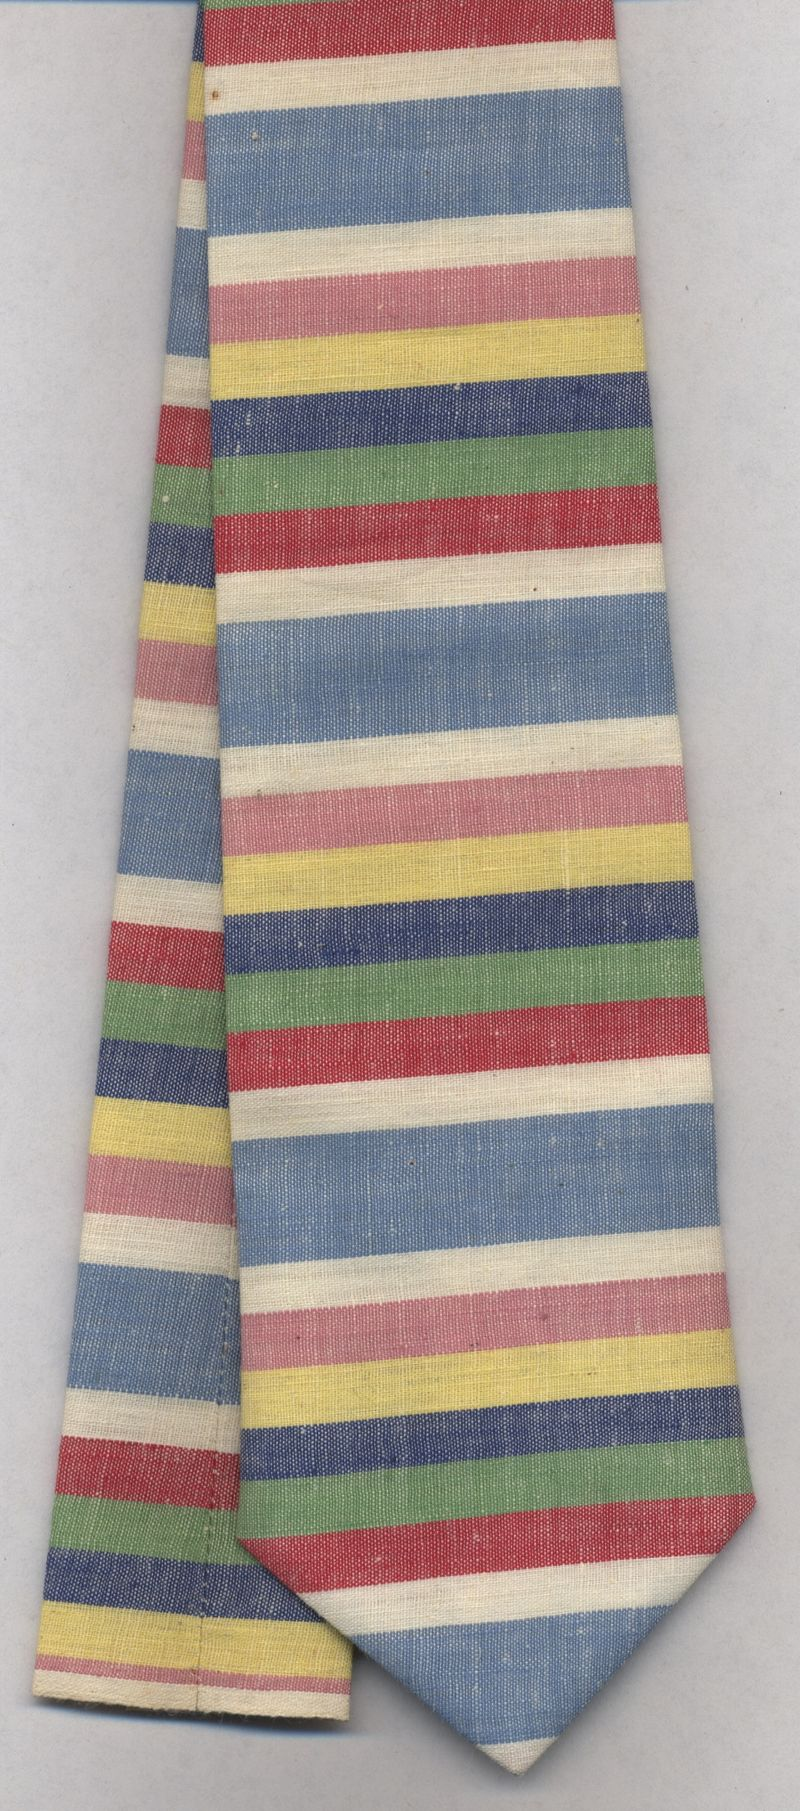 Striped chambray curatory